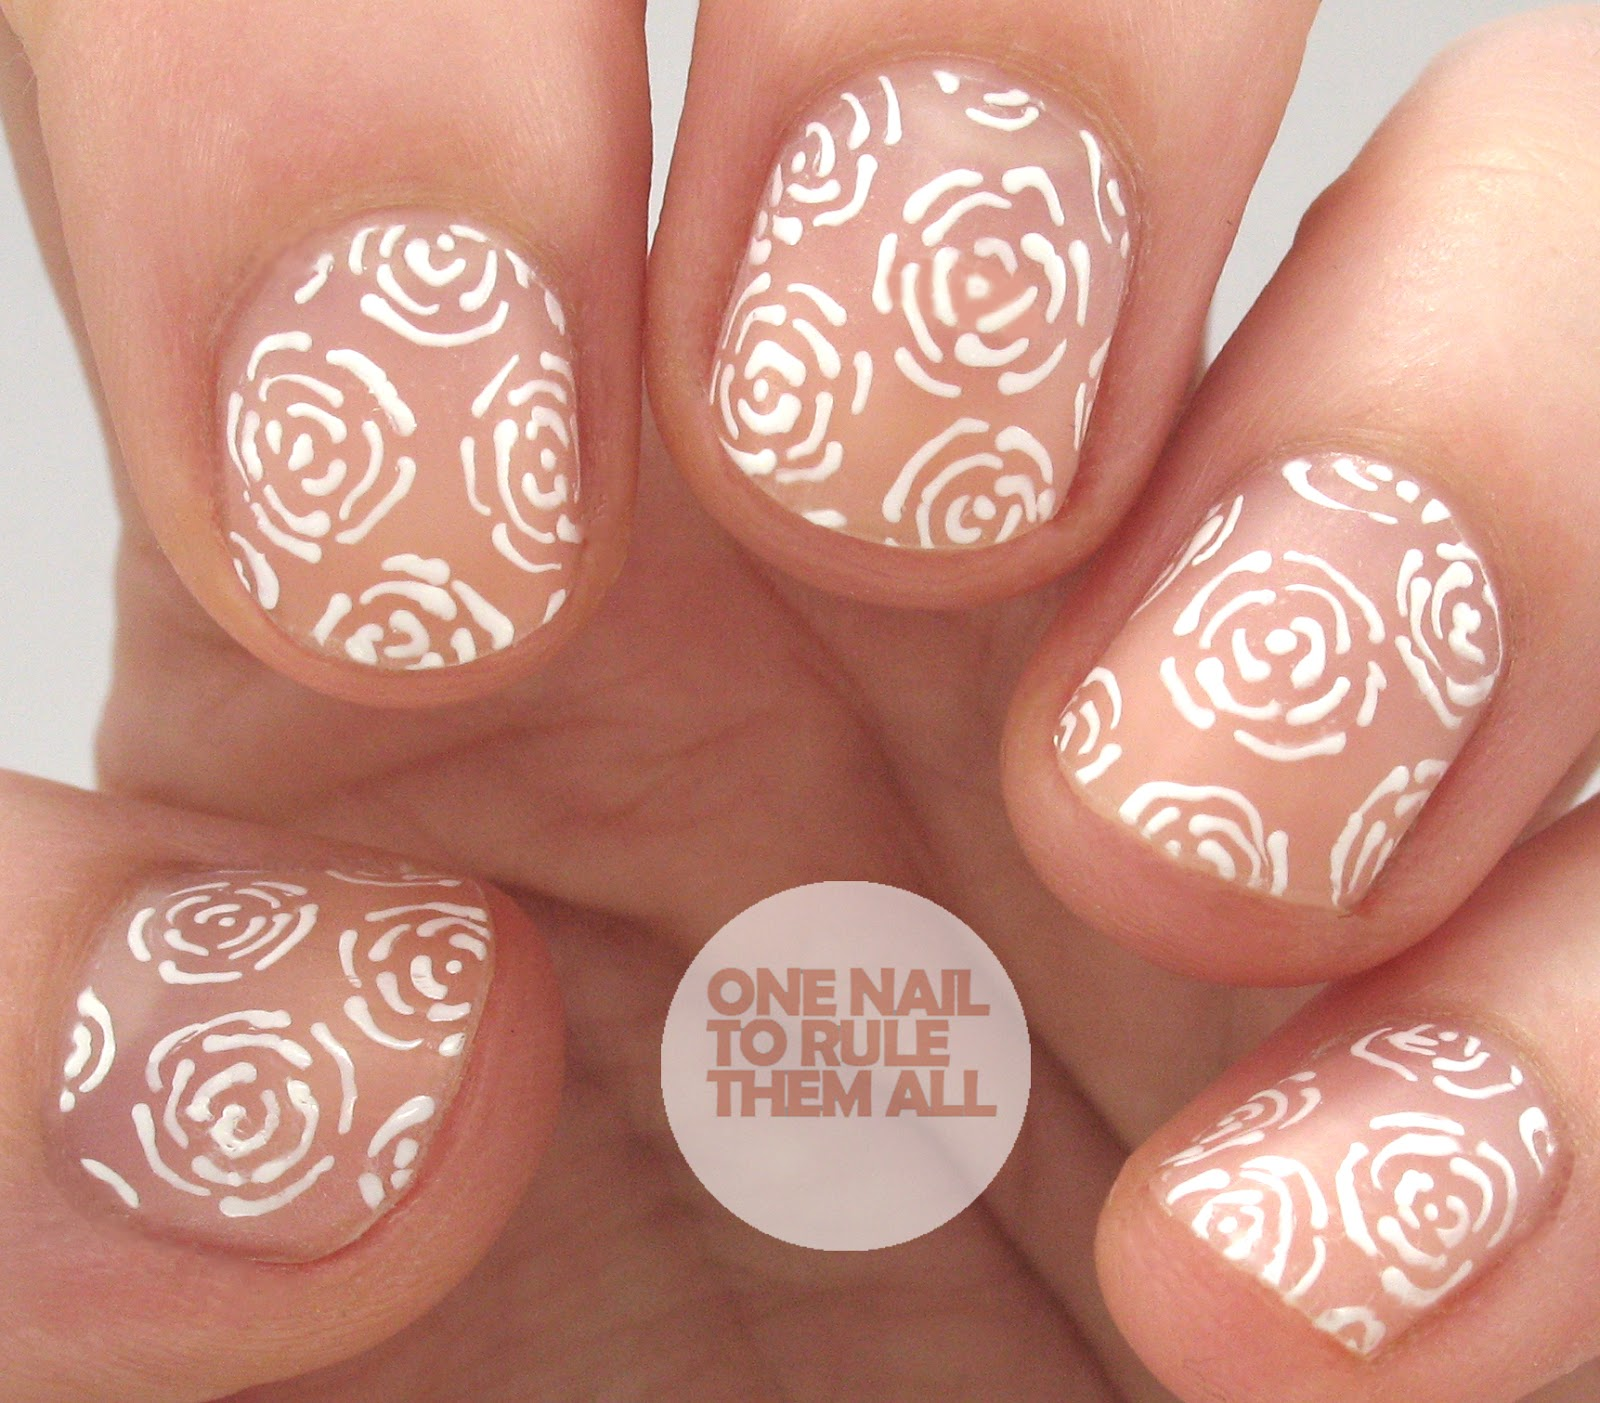 One Nail To Rule Them All Barry M Nail Art Pens Review: One Nail To Rule Them All: Negative Space Roses